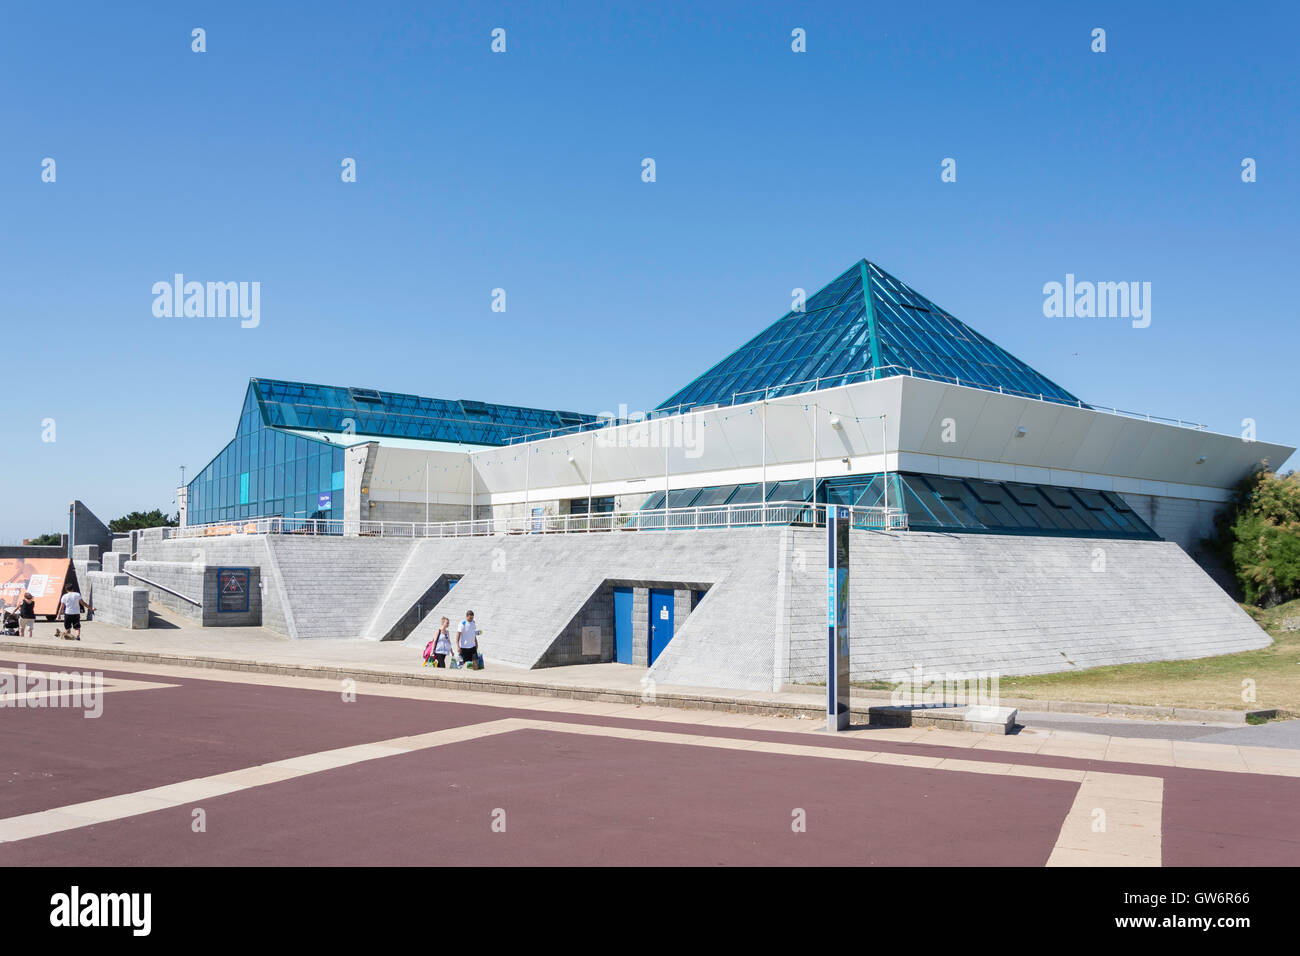 The Pyramids Entertainment Centre, Clarence Esplanade, Southsea, Portsmouth, Hampshire, England, United Kingdom Stock Photo